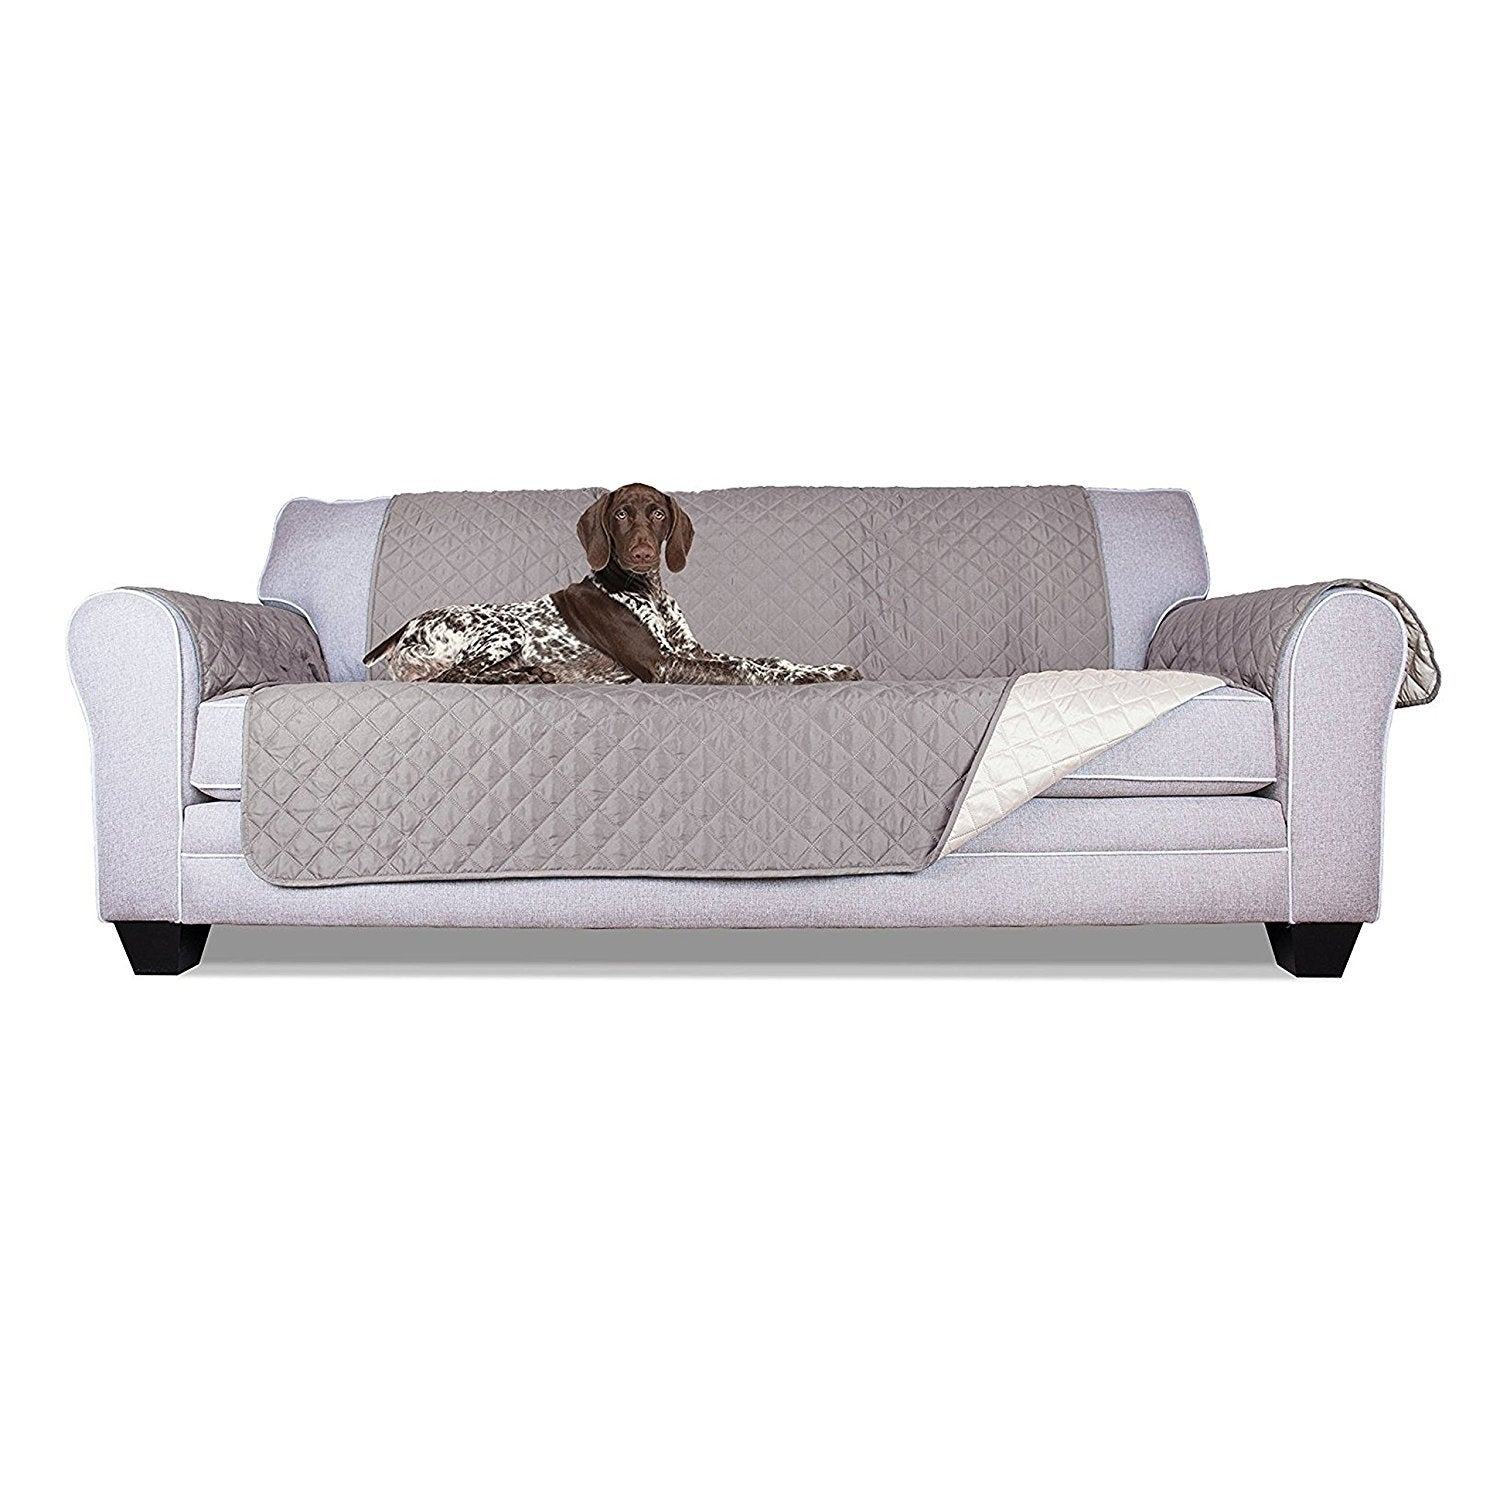 Fine Aleko Grey Pet Friendly Sofa Furniture Protector Onthecornerstone Fun Painted Chair Ideas Images Onthecornerstoneorg